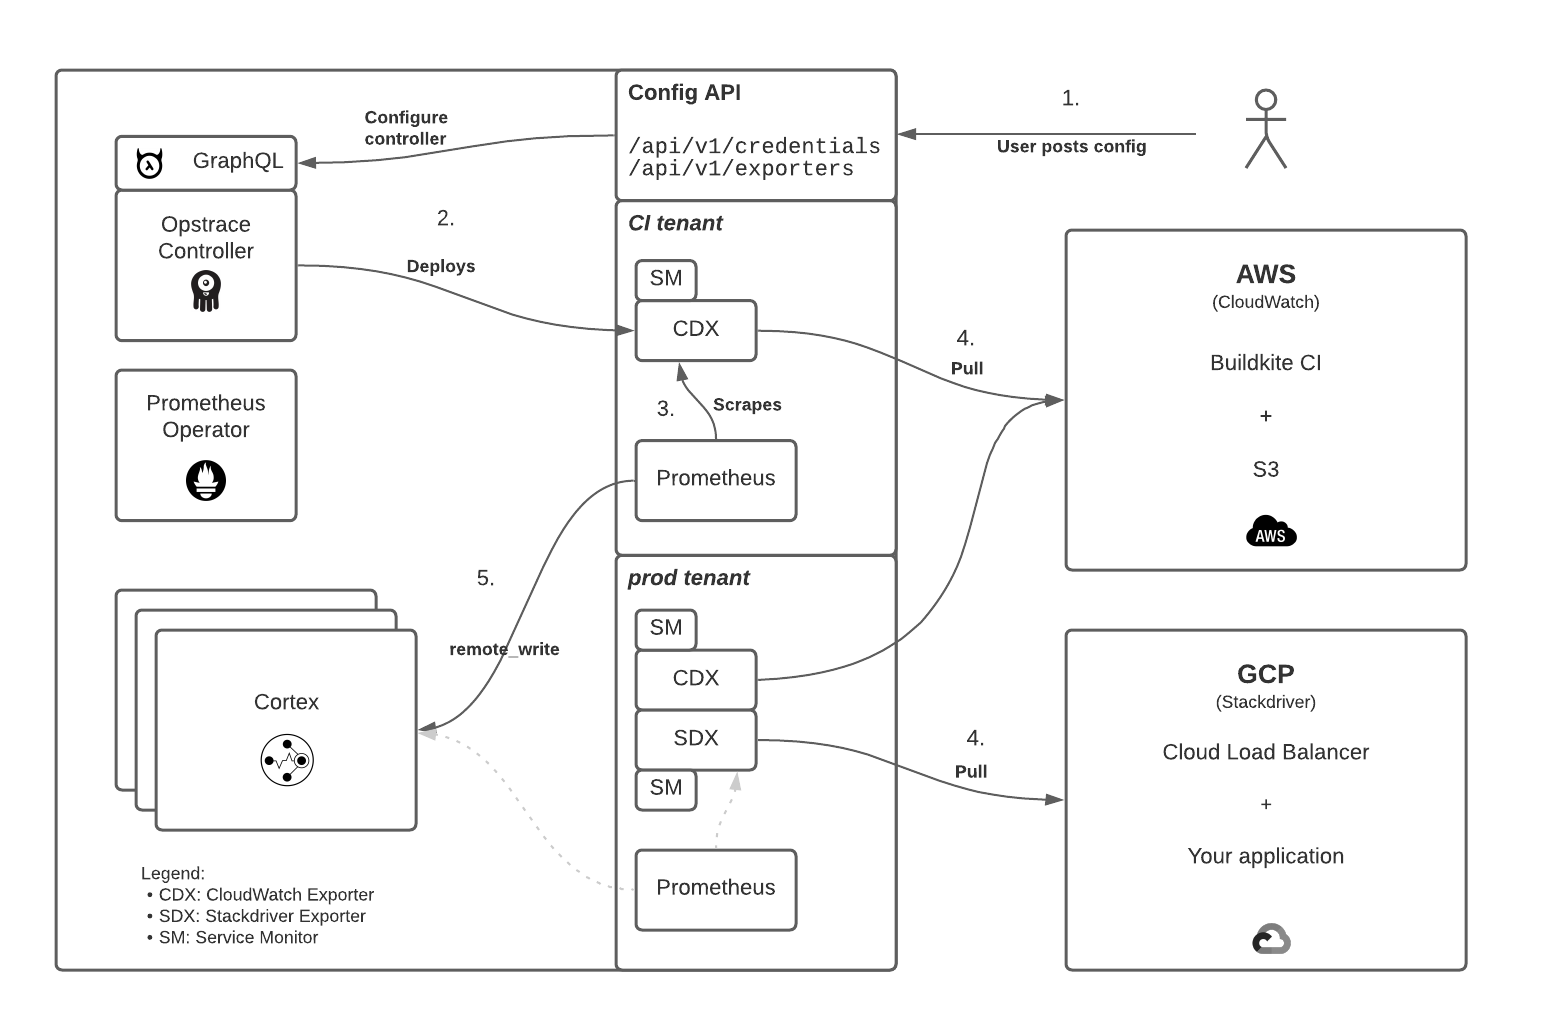 diagram of cloud exporter architecture showing AWS and GCP exporters